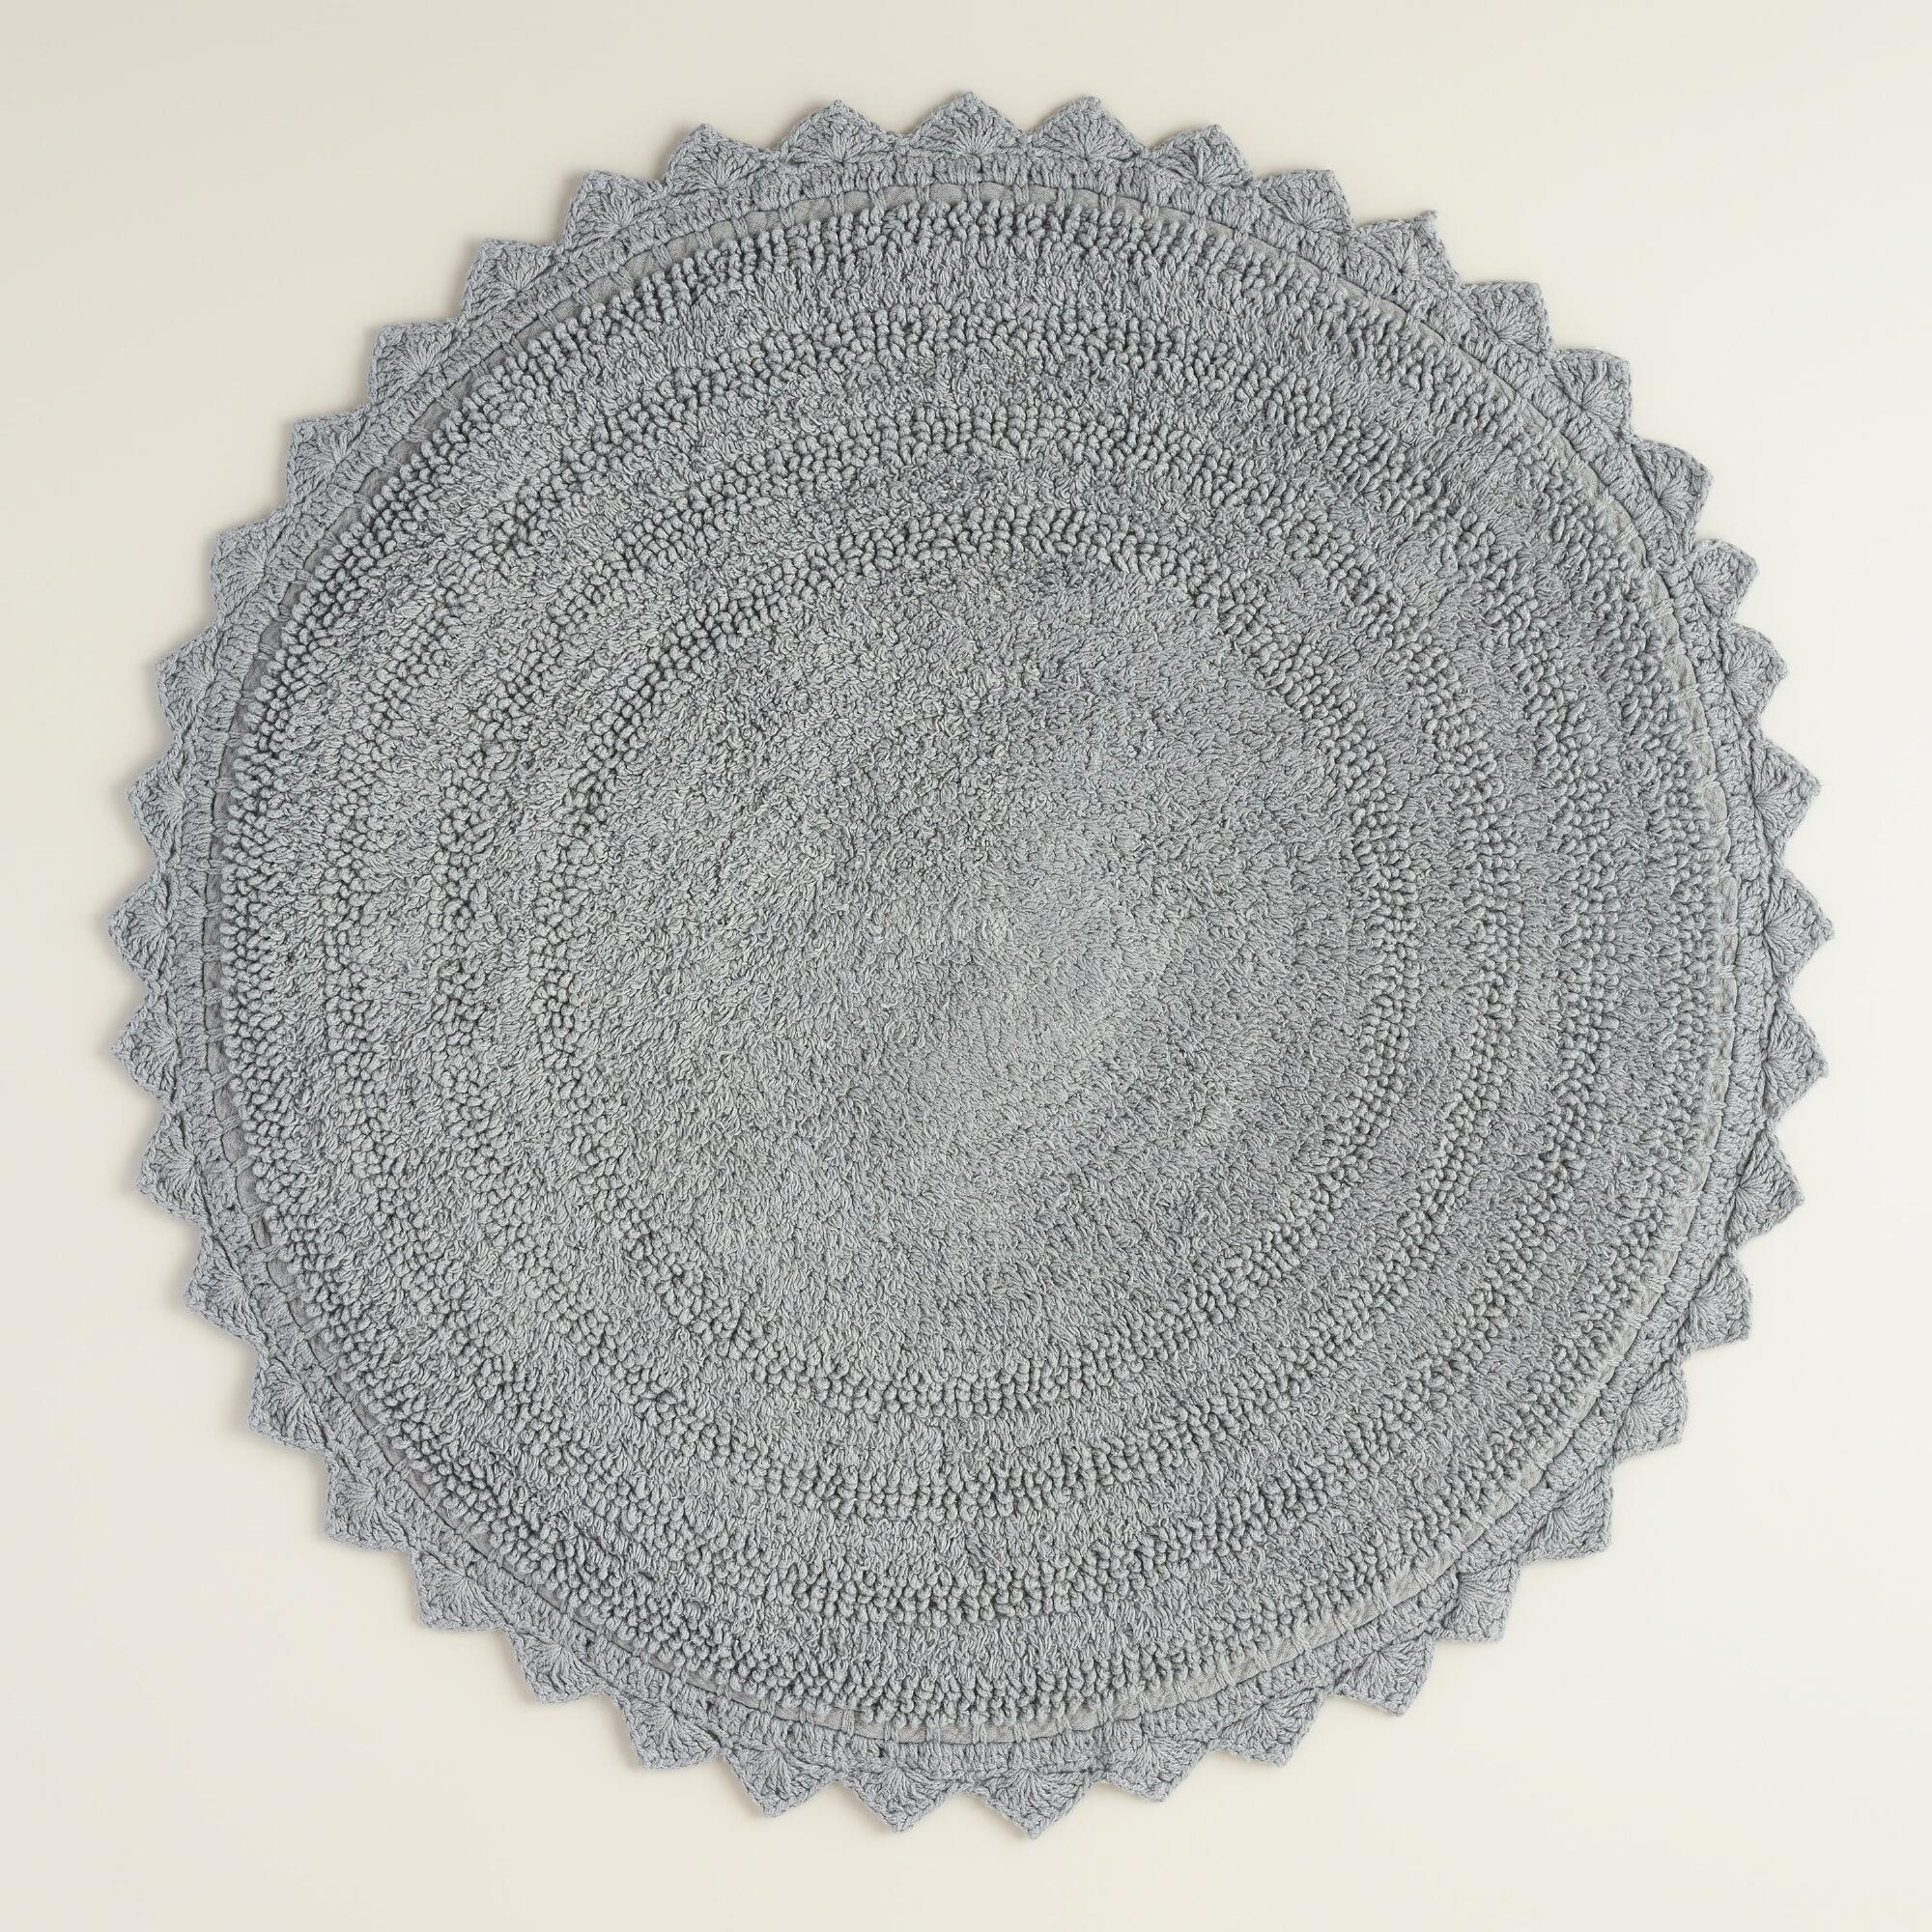 Round Rugs For The Bathroom